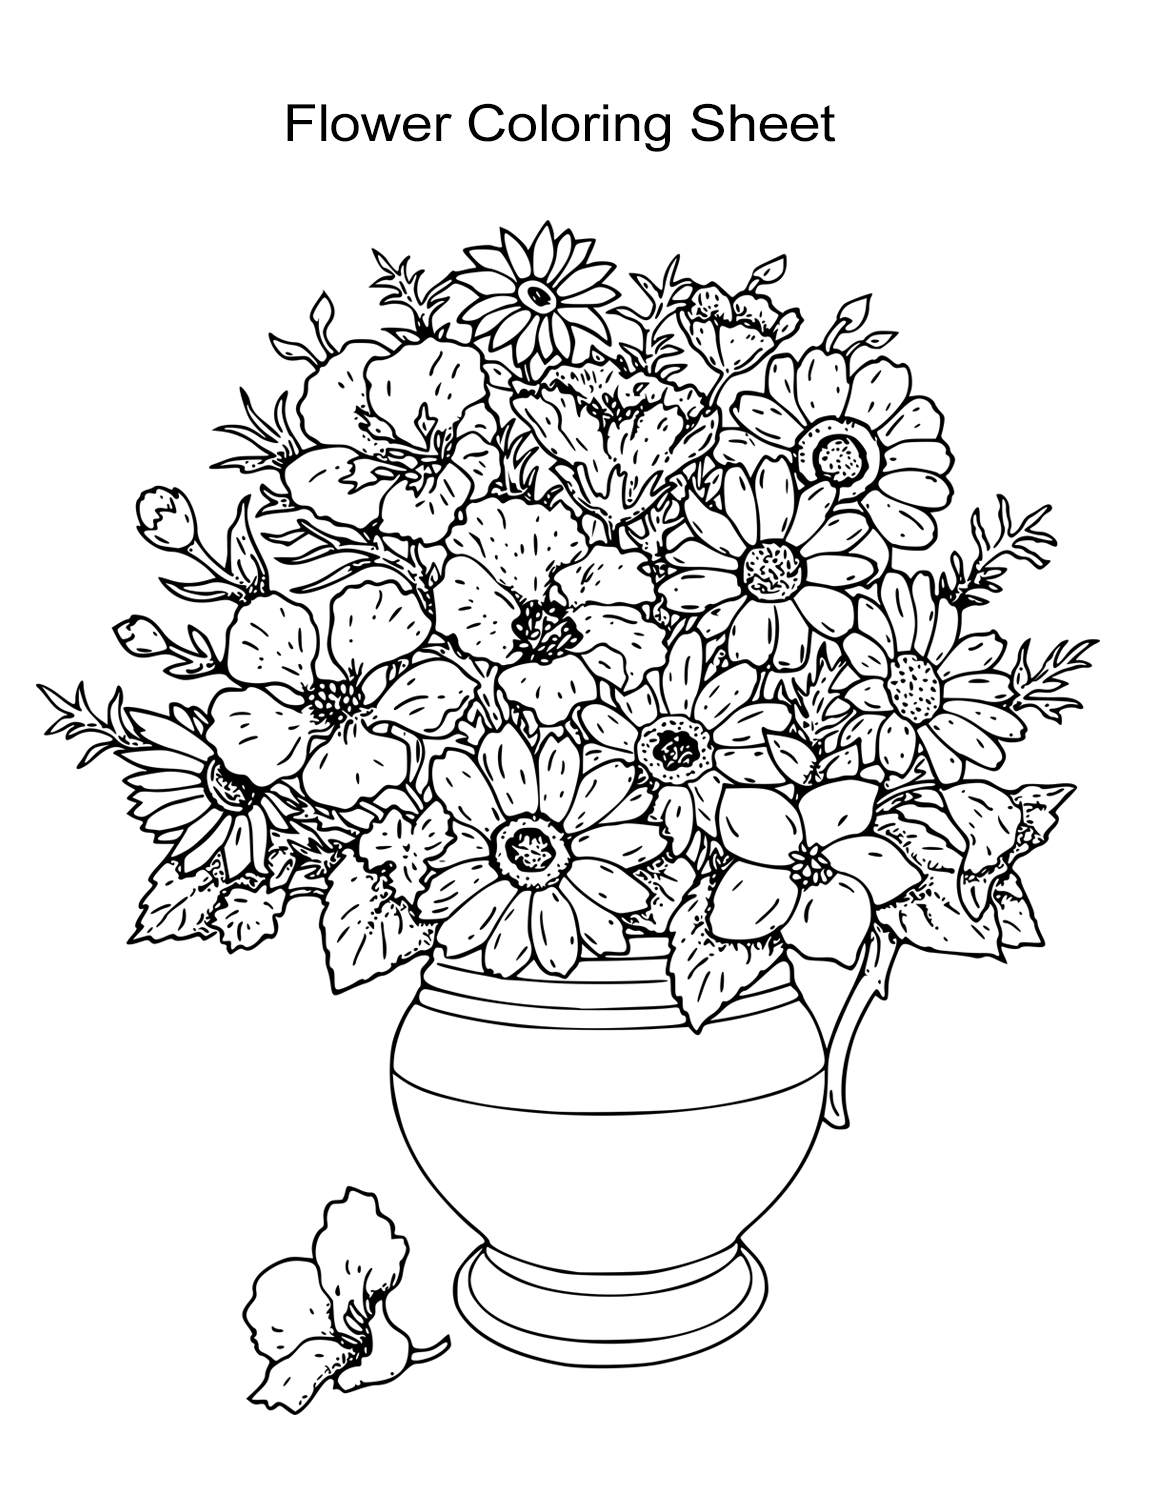 flower coloring pictures roses flowers coloring page free printable coloring pages pictures flower coloring